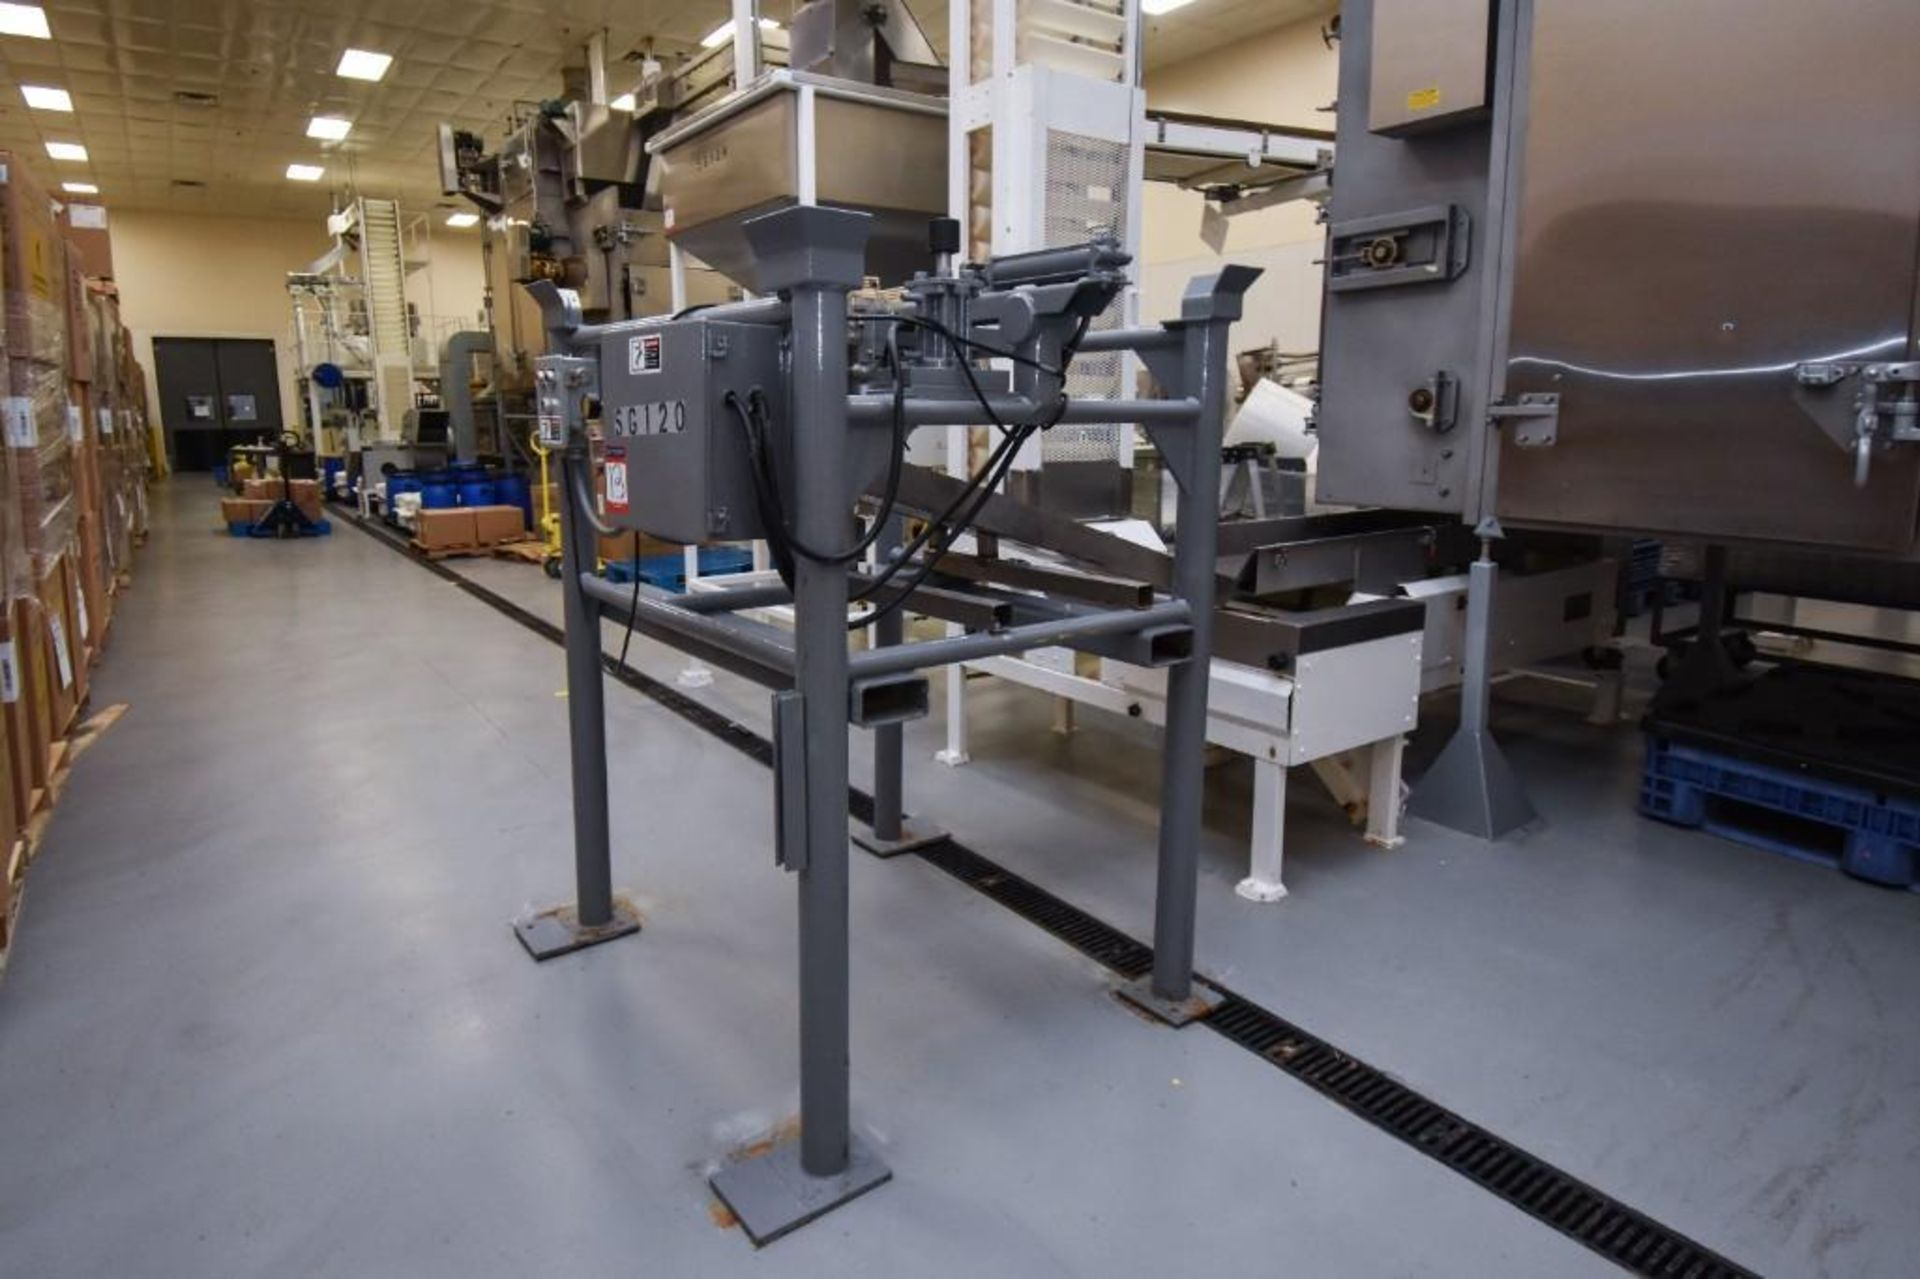 Vibratory Feeder For Totes - Image 2 of 7